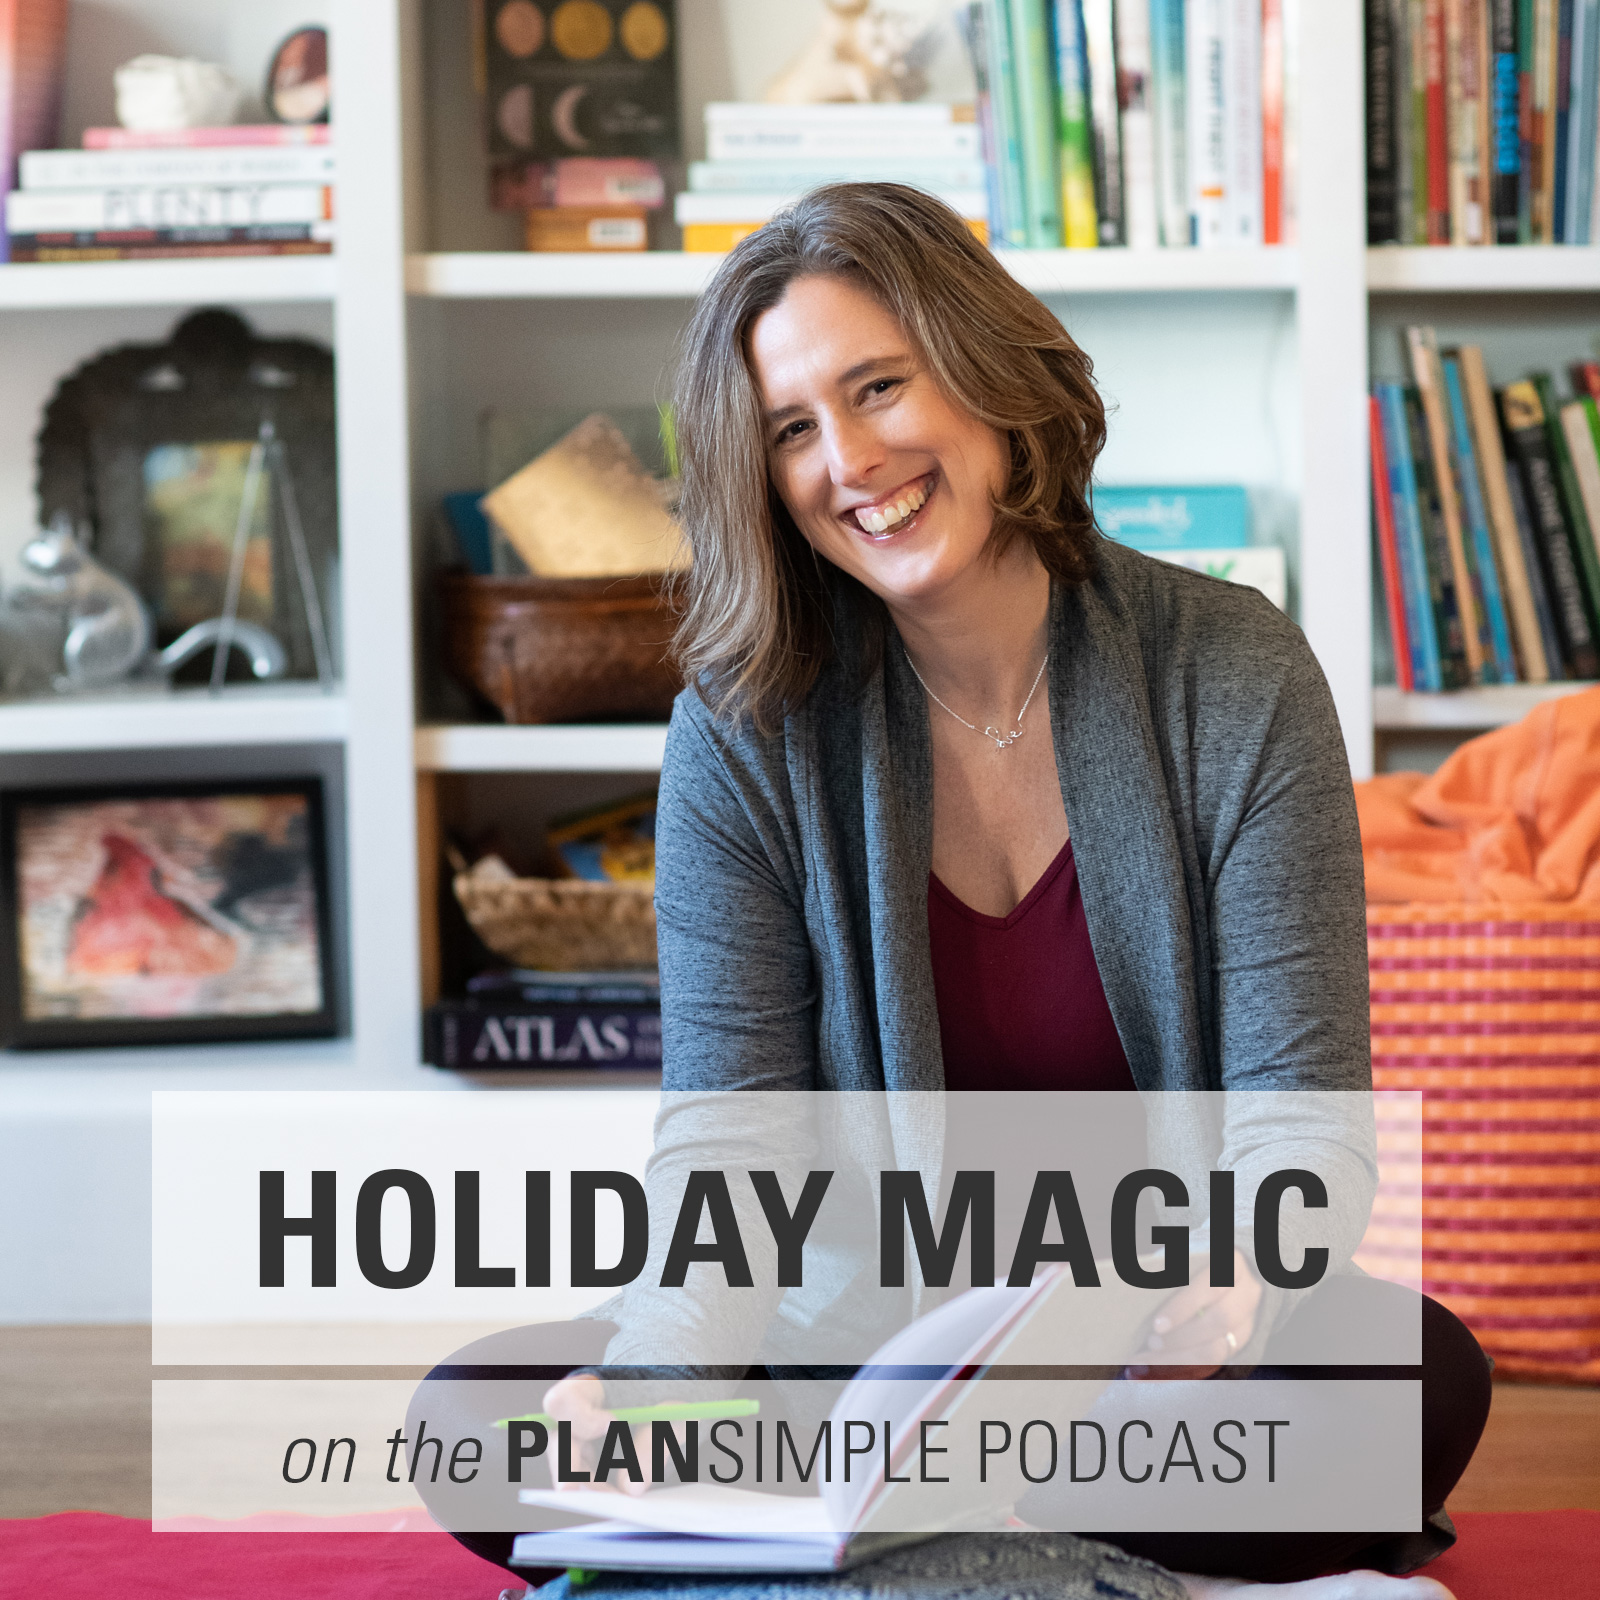 Holiday Magic With Mia Moran